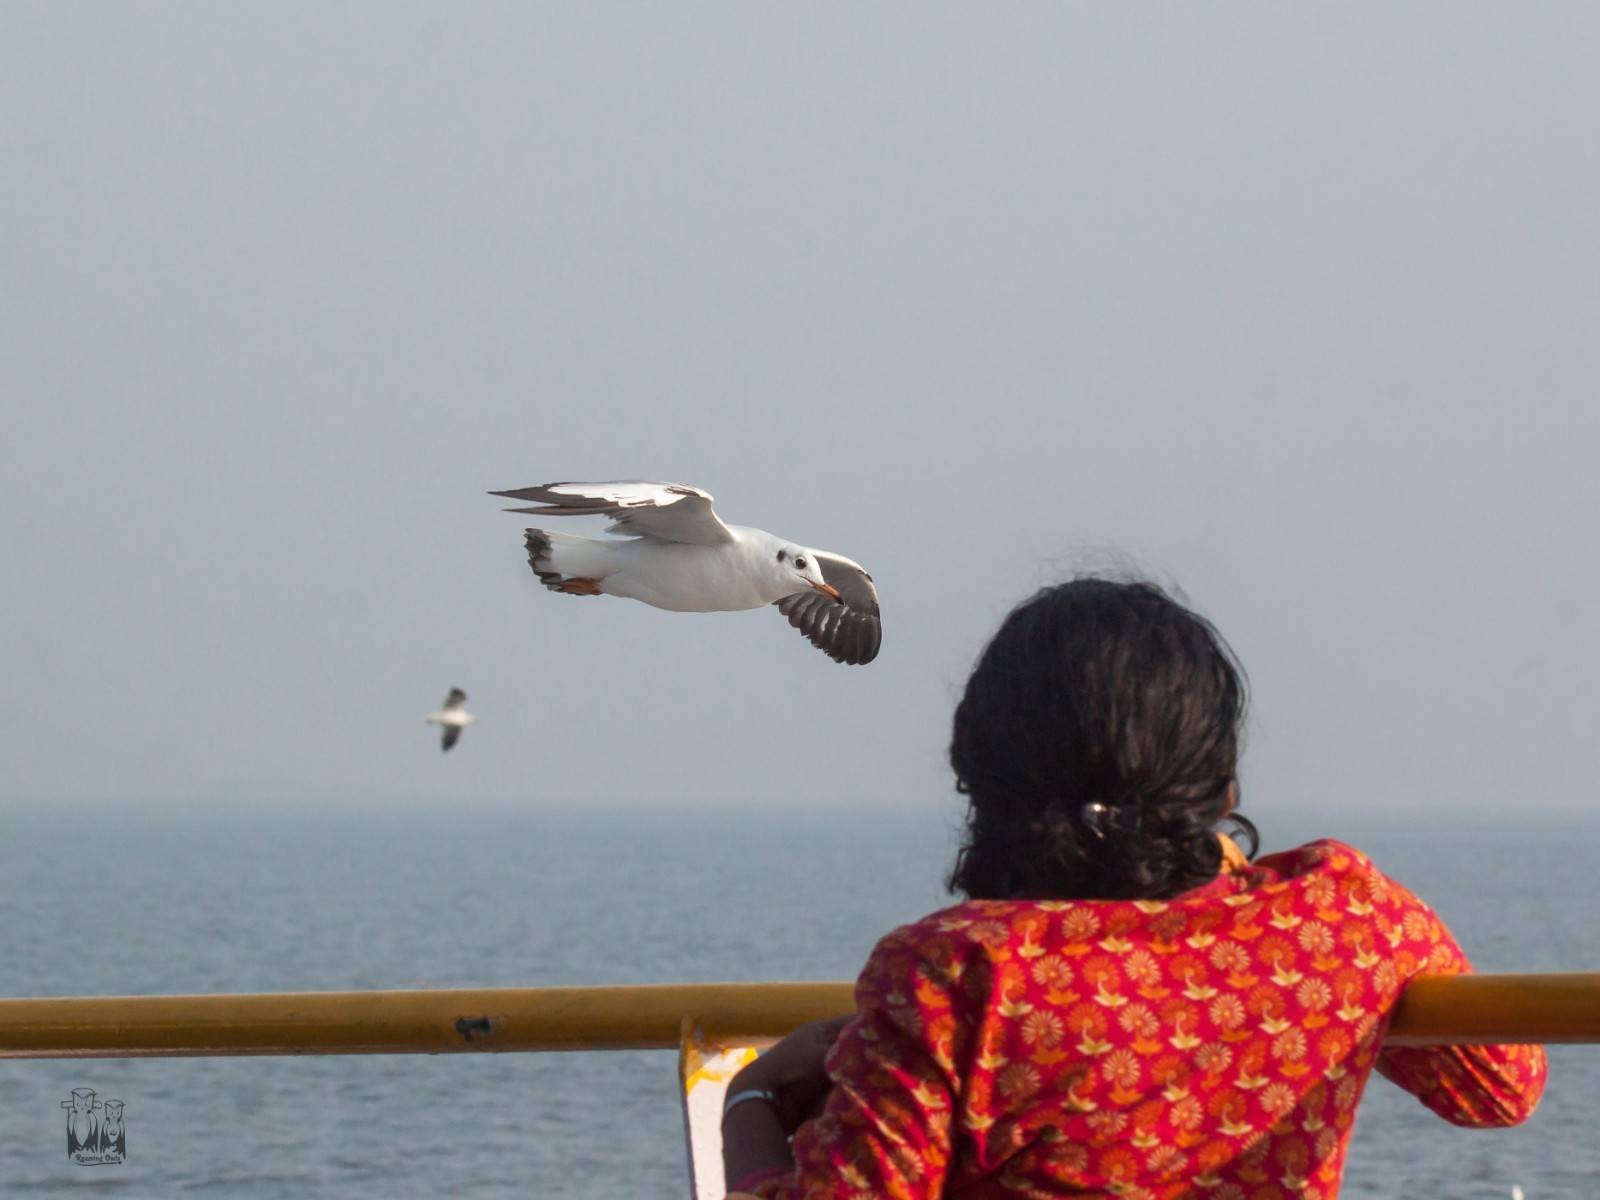 Mandwa boat travel,Sea gull glide,Mumbai sea birds